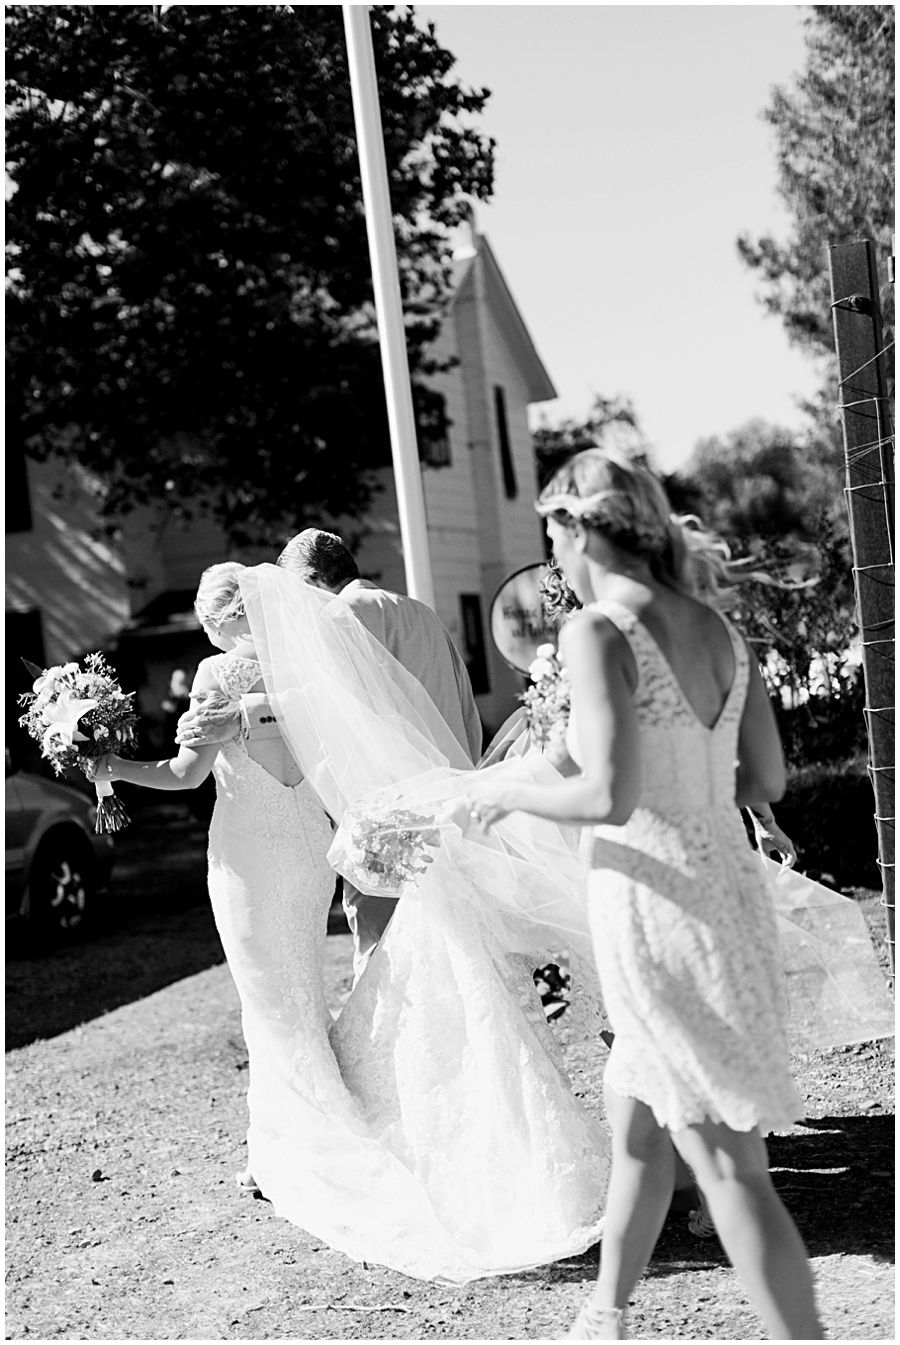 olivia leigh photography oregon wedding photographer_1558.jpg